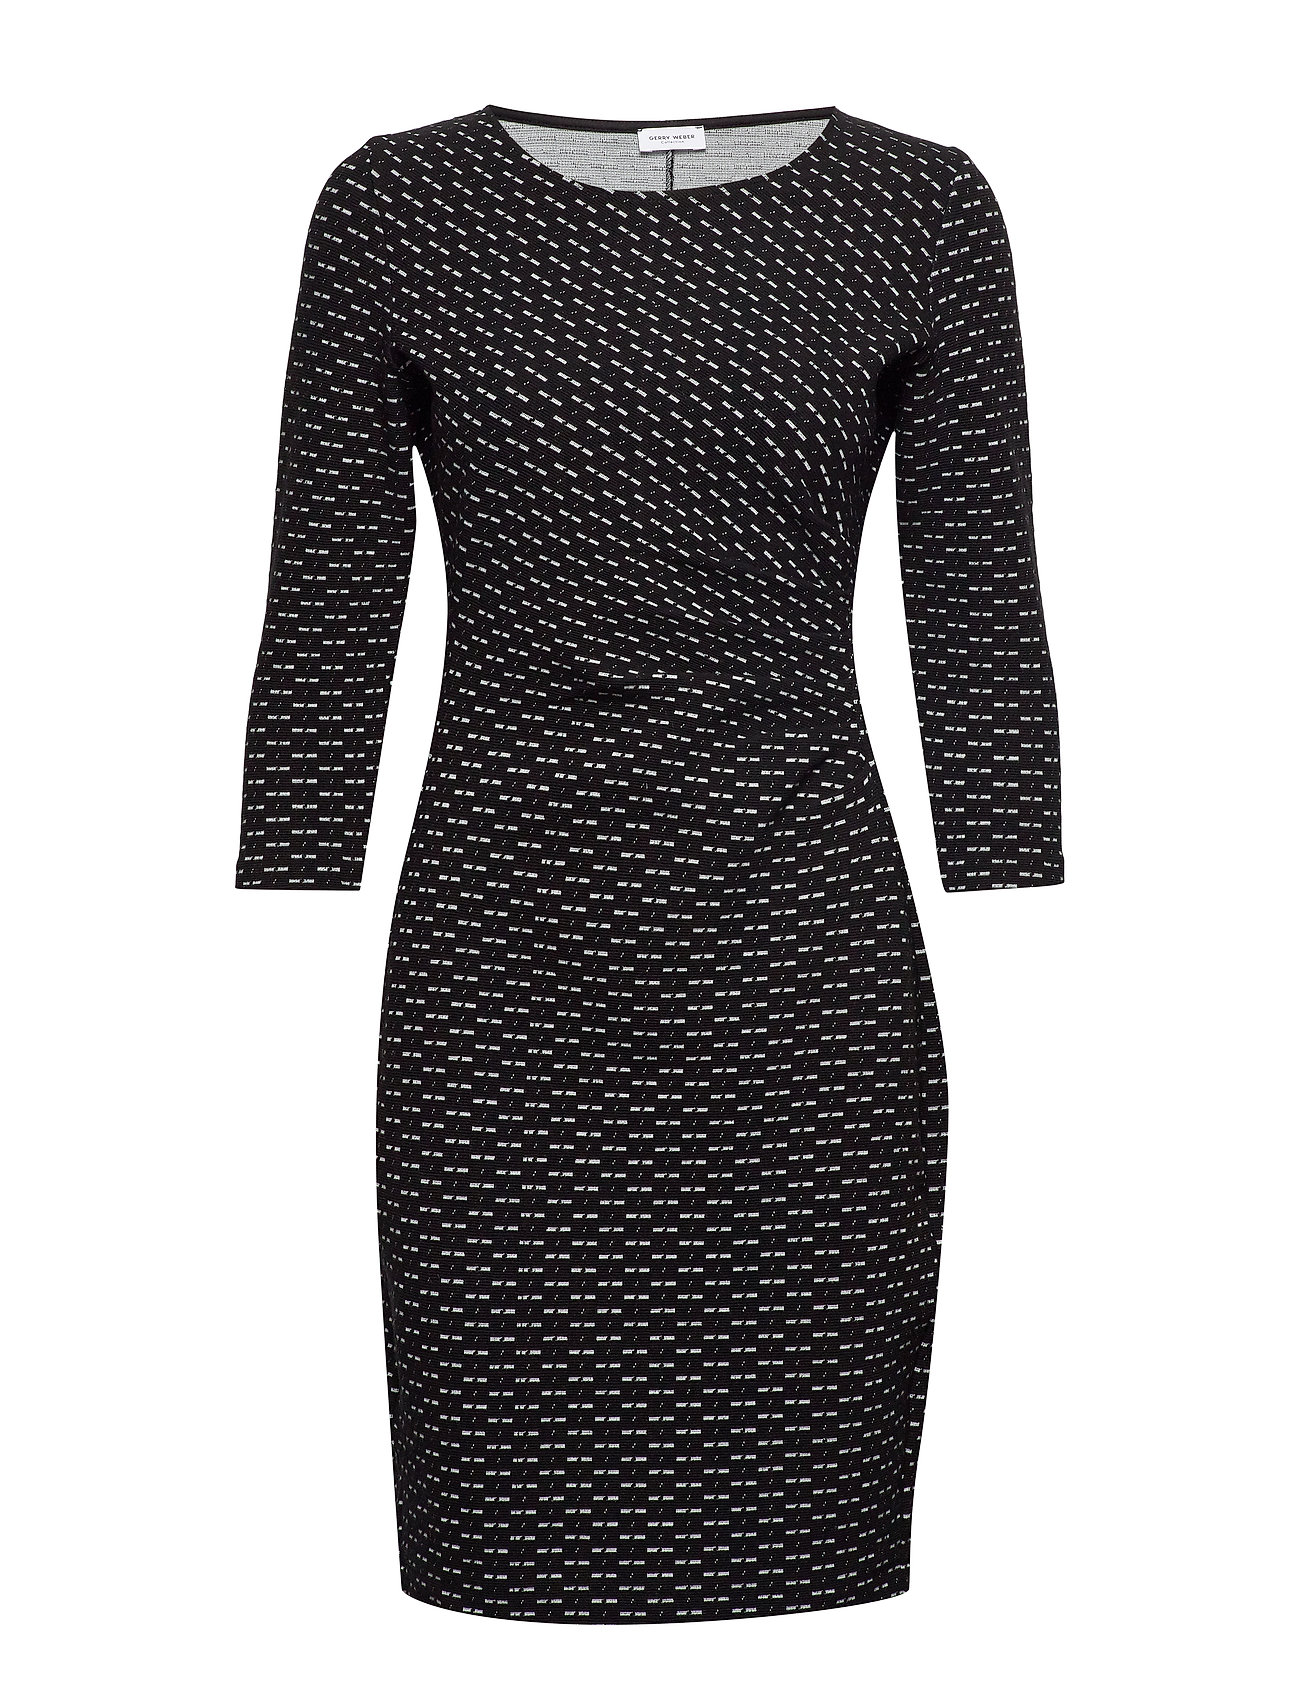 Gerry Weber DRESS KNITTED FABRIC - BLACK/ECRU/WHITE FIGURED